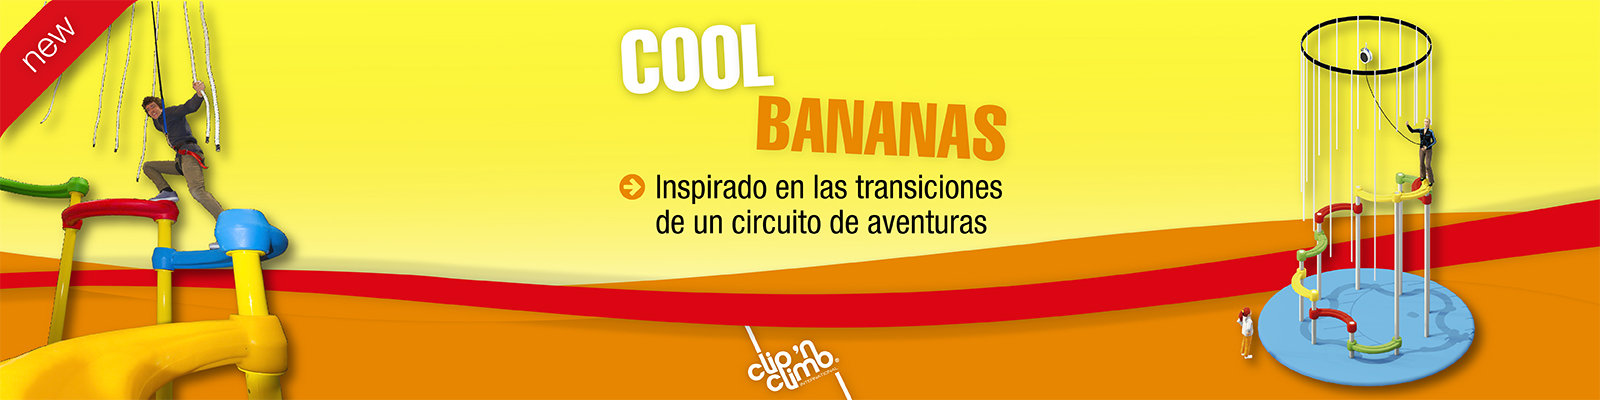 ES_COOLBANANAS_Website_1600x400px